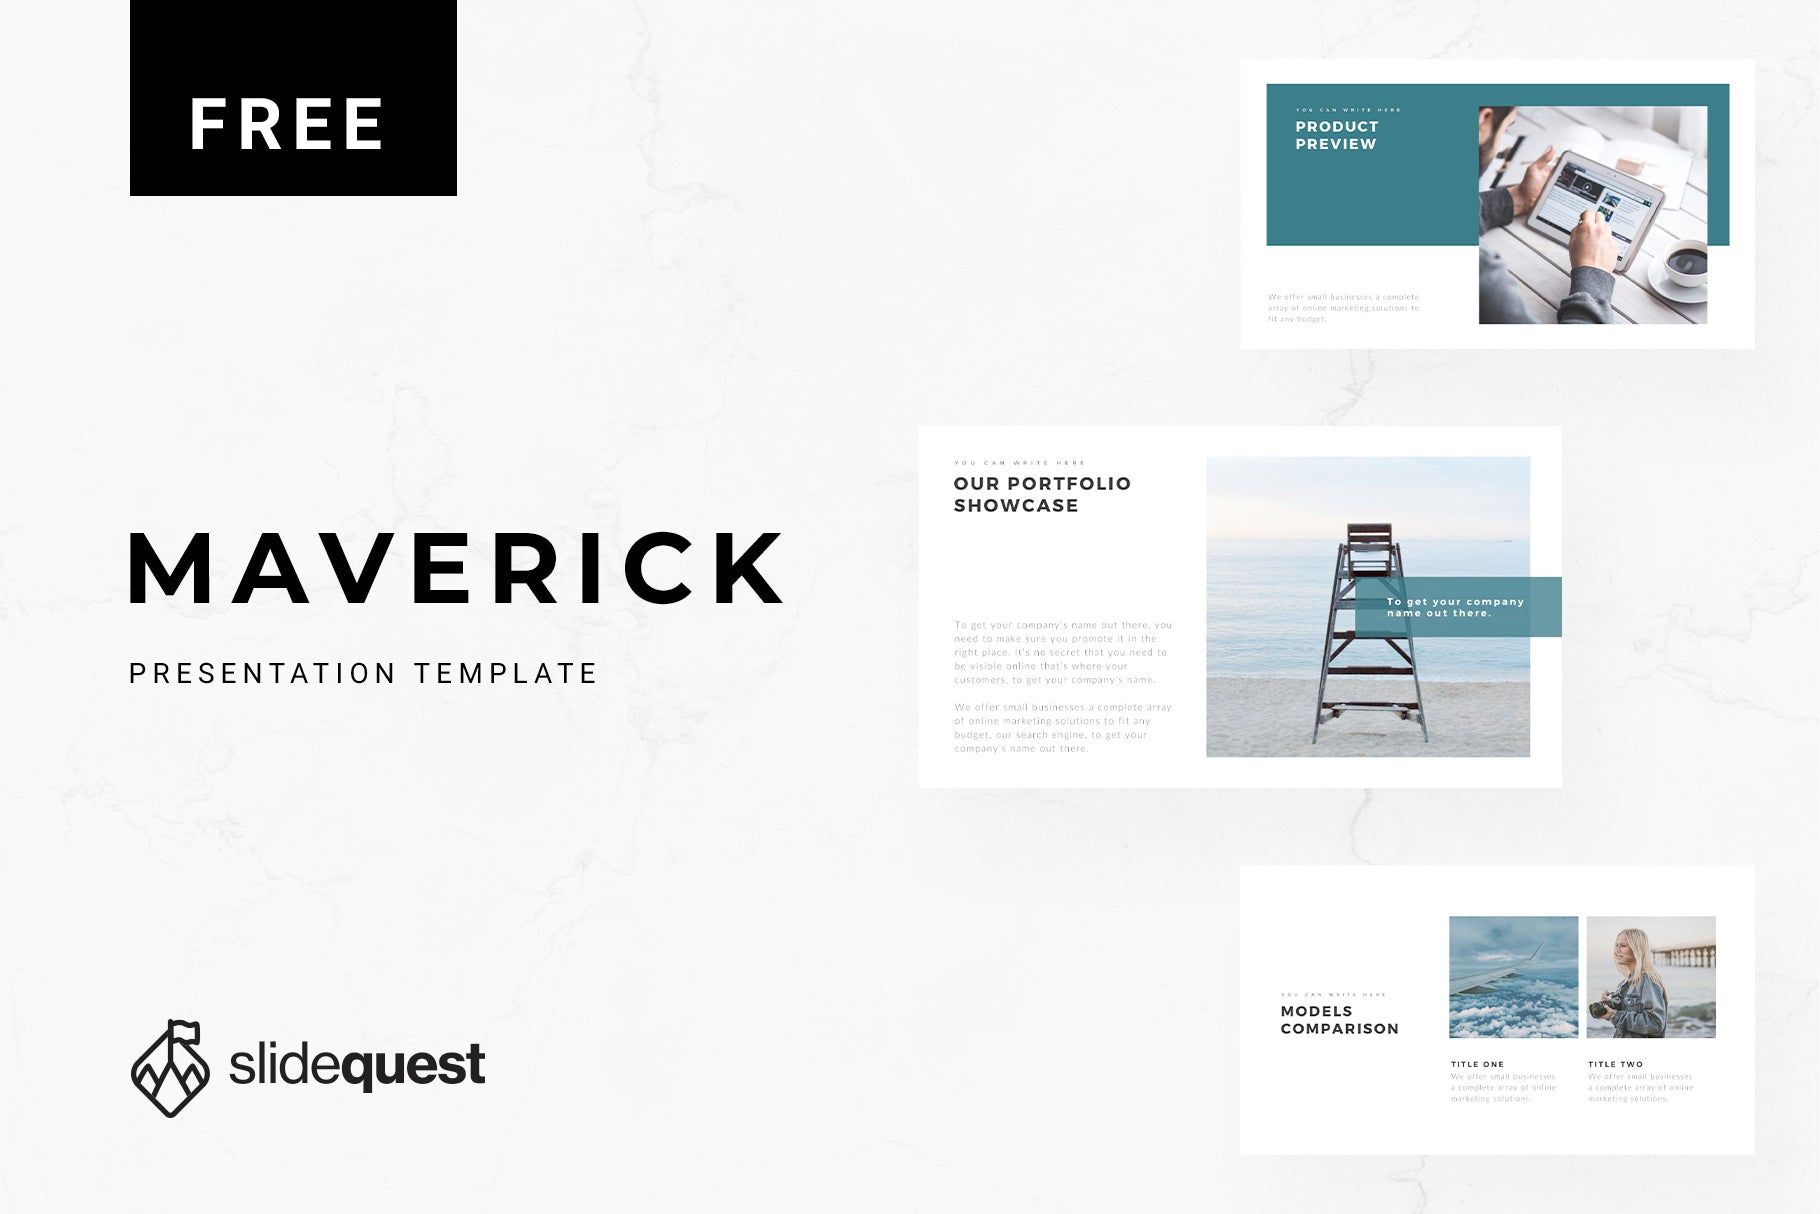 Best Free Presentation Templates 2019 – Slidequest